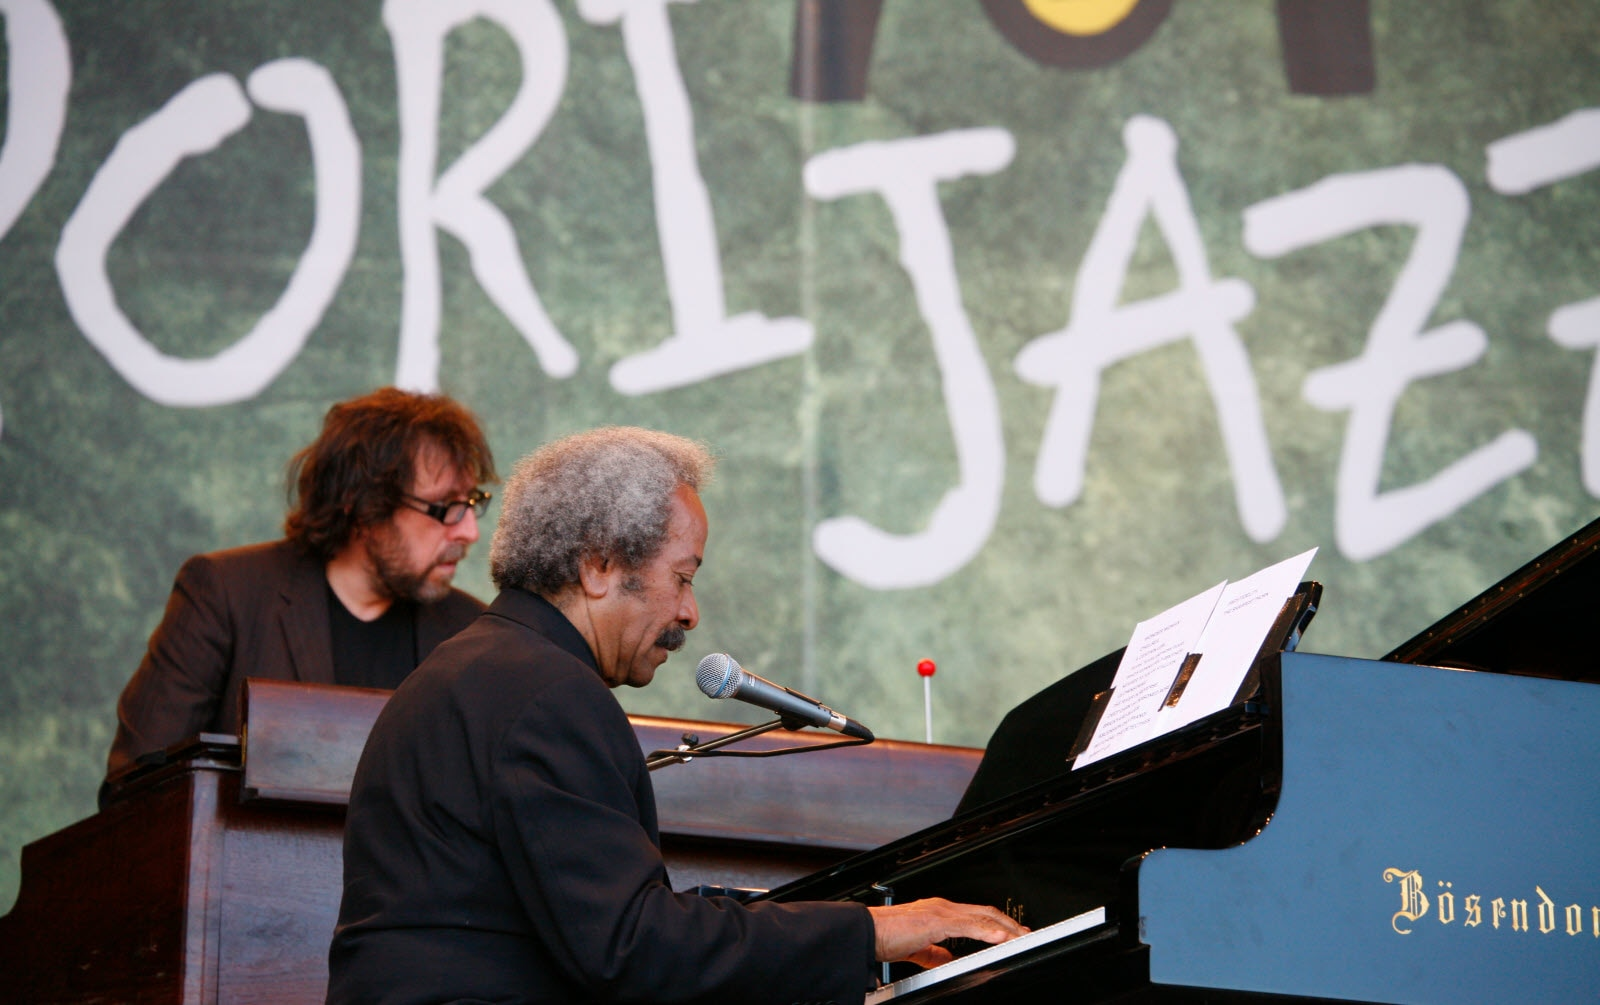 Steve Nieve and Alain Toussaint performing with Elvis Costello at Pori Jazz, Finland, July 21, 2007. Tim Bird.